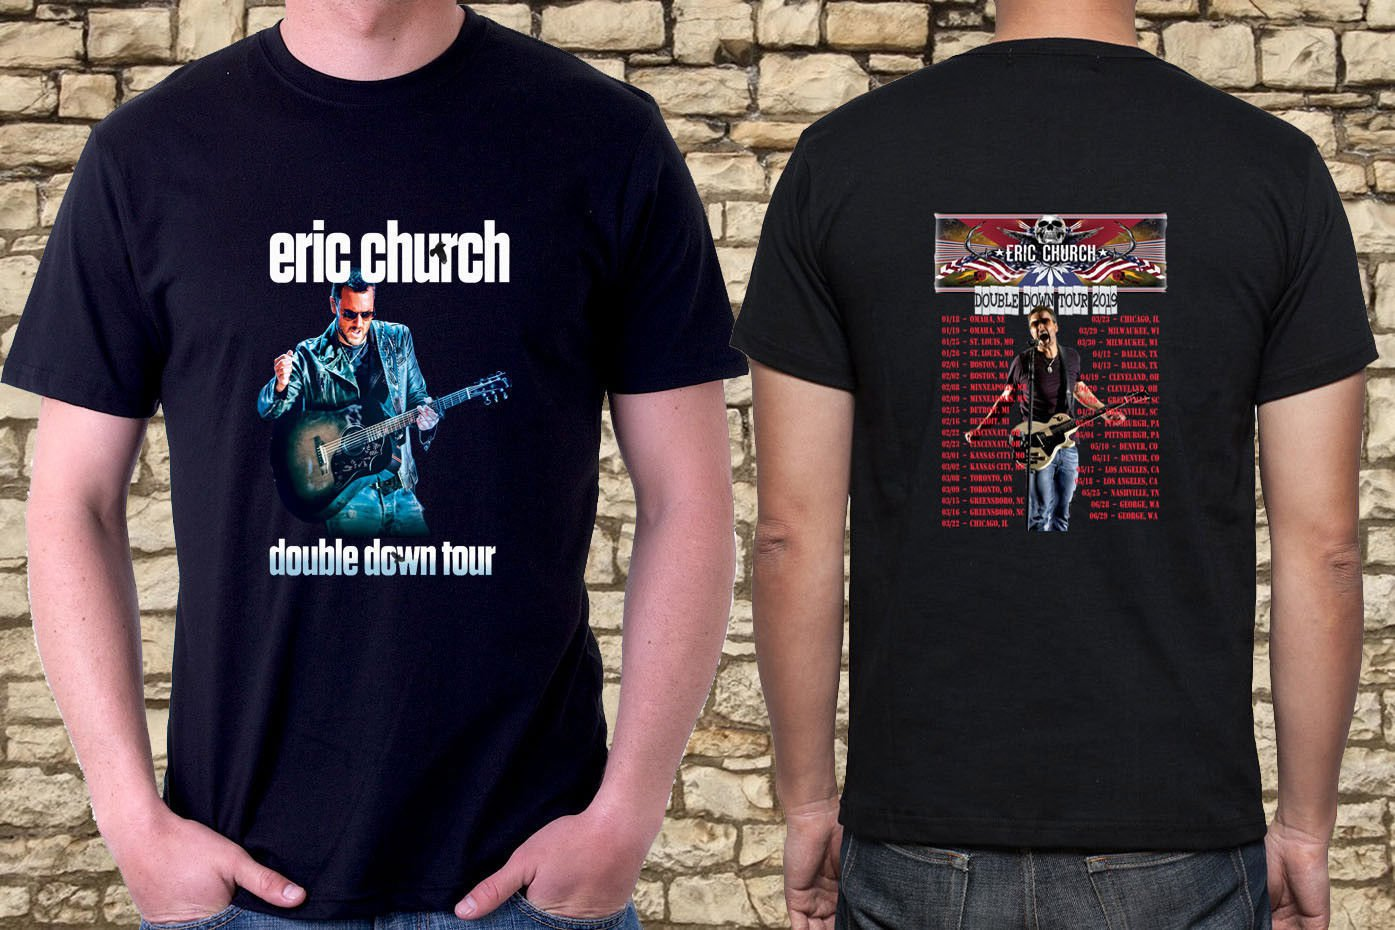 New  Eric-Church-Concert-Tour-date-2019 Black Tee T-Shirt